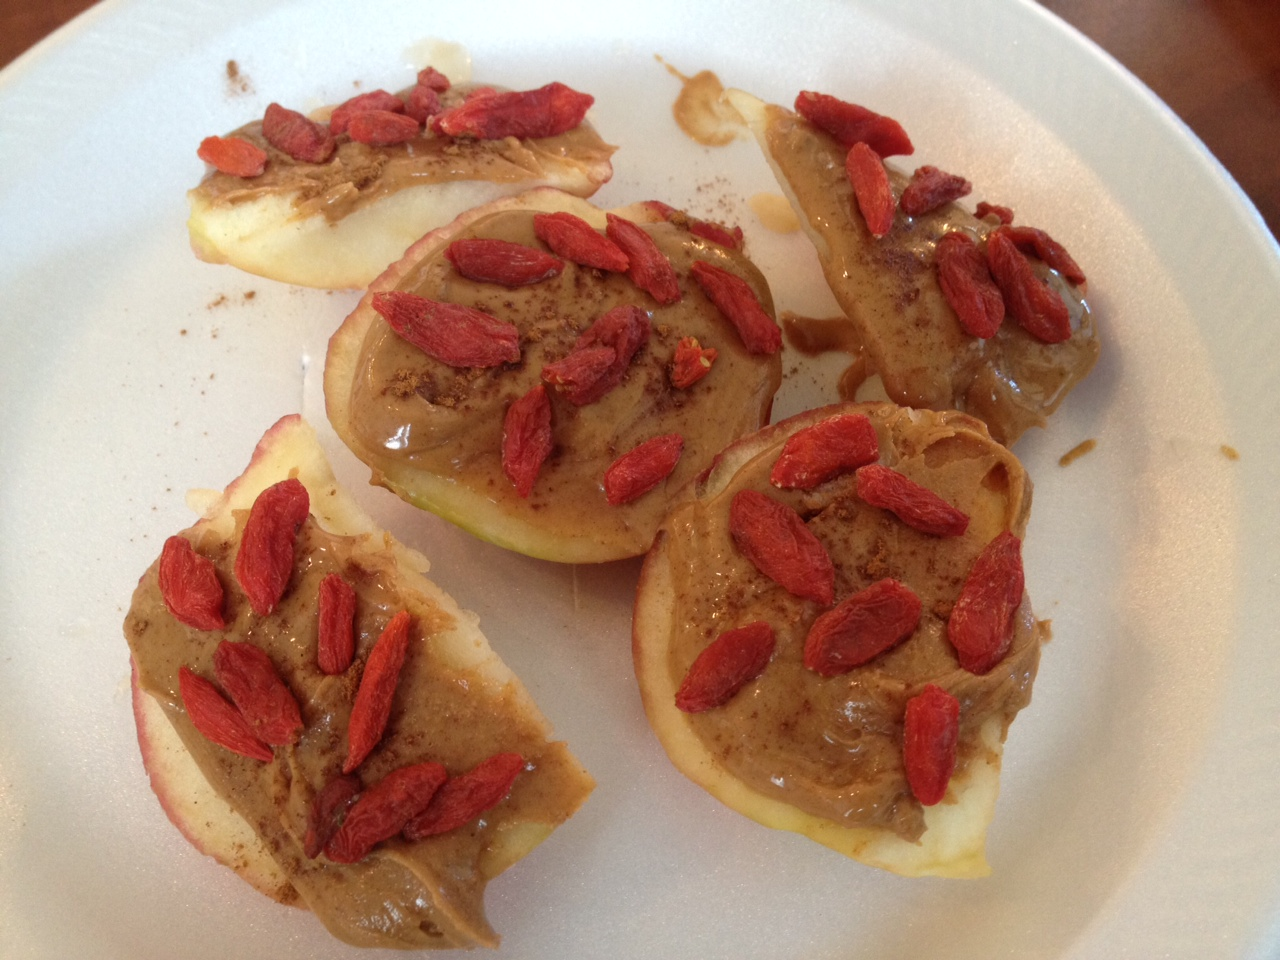 Goji Berry Snack with Apples and Peanut Butter